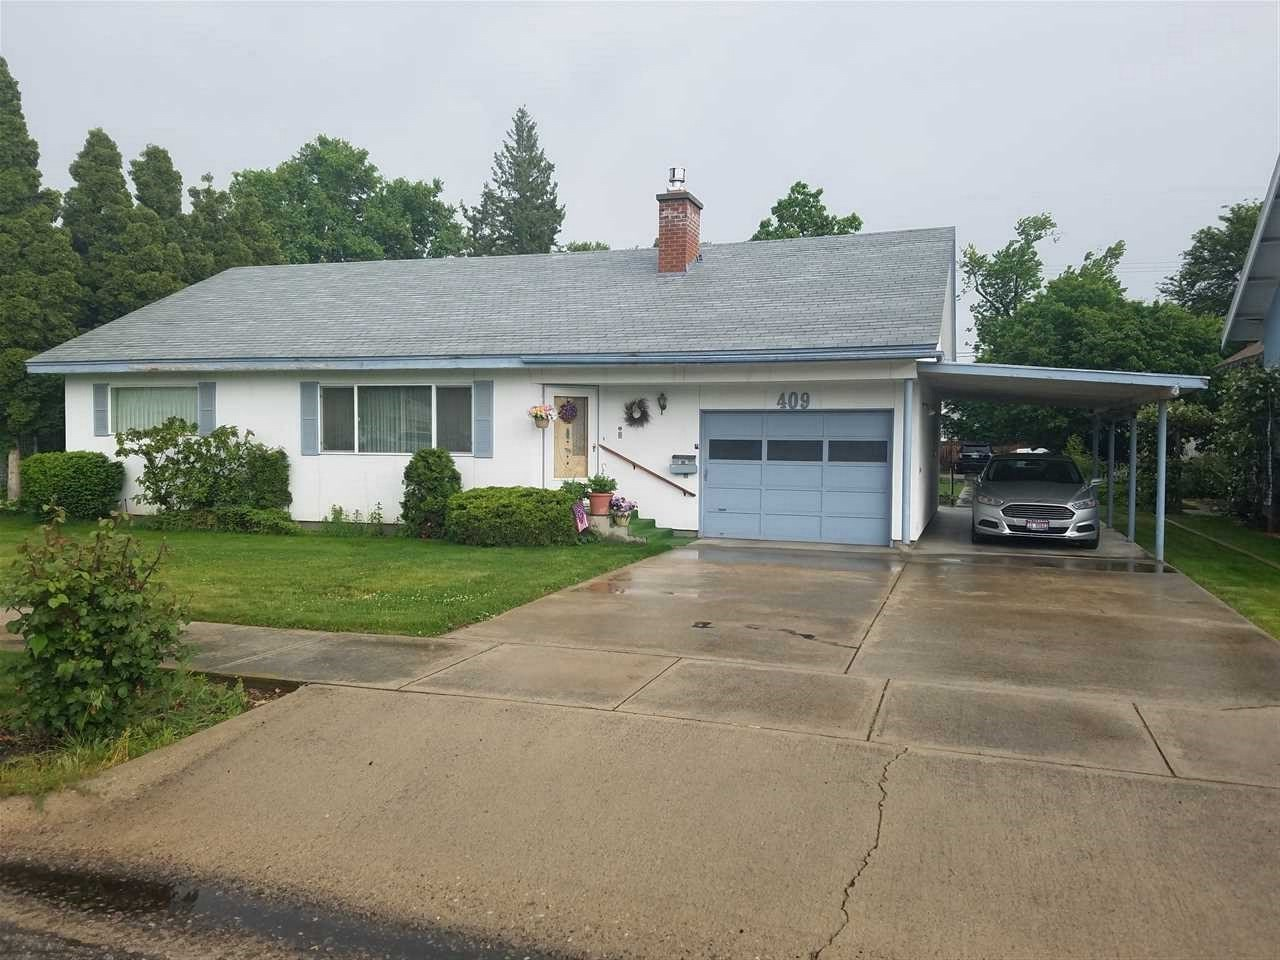 409 E 1st Street,Emmett,Idaho 83617,2 Bedrooms Bedrooms,2 BathroomsBathrooms,Residential,409 E 1st Street,98693047